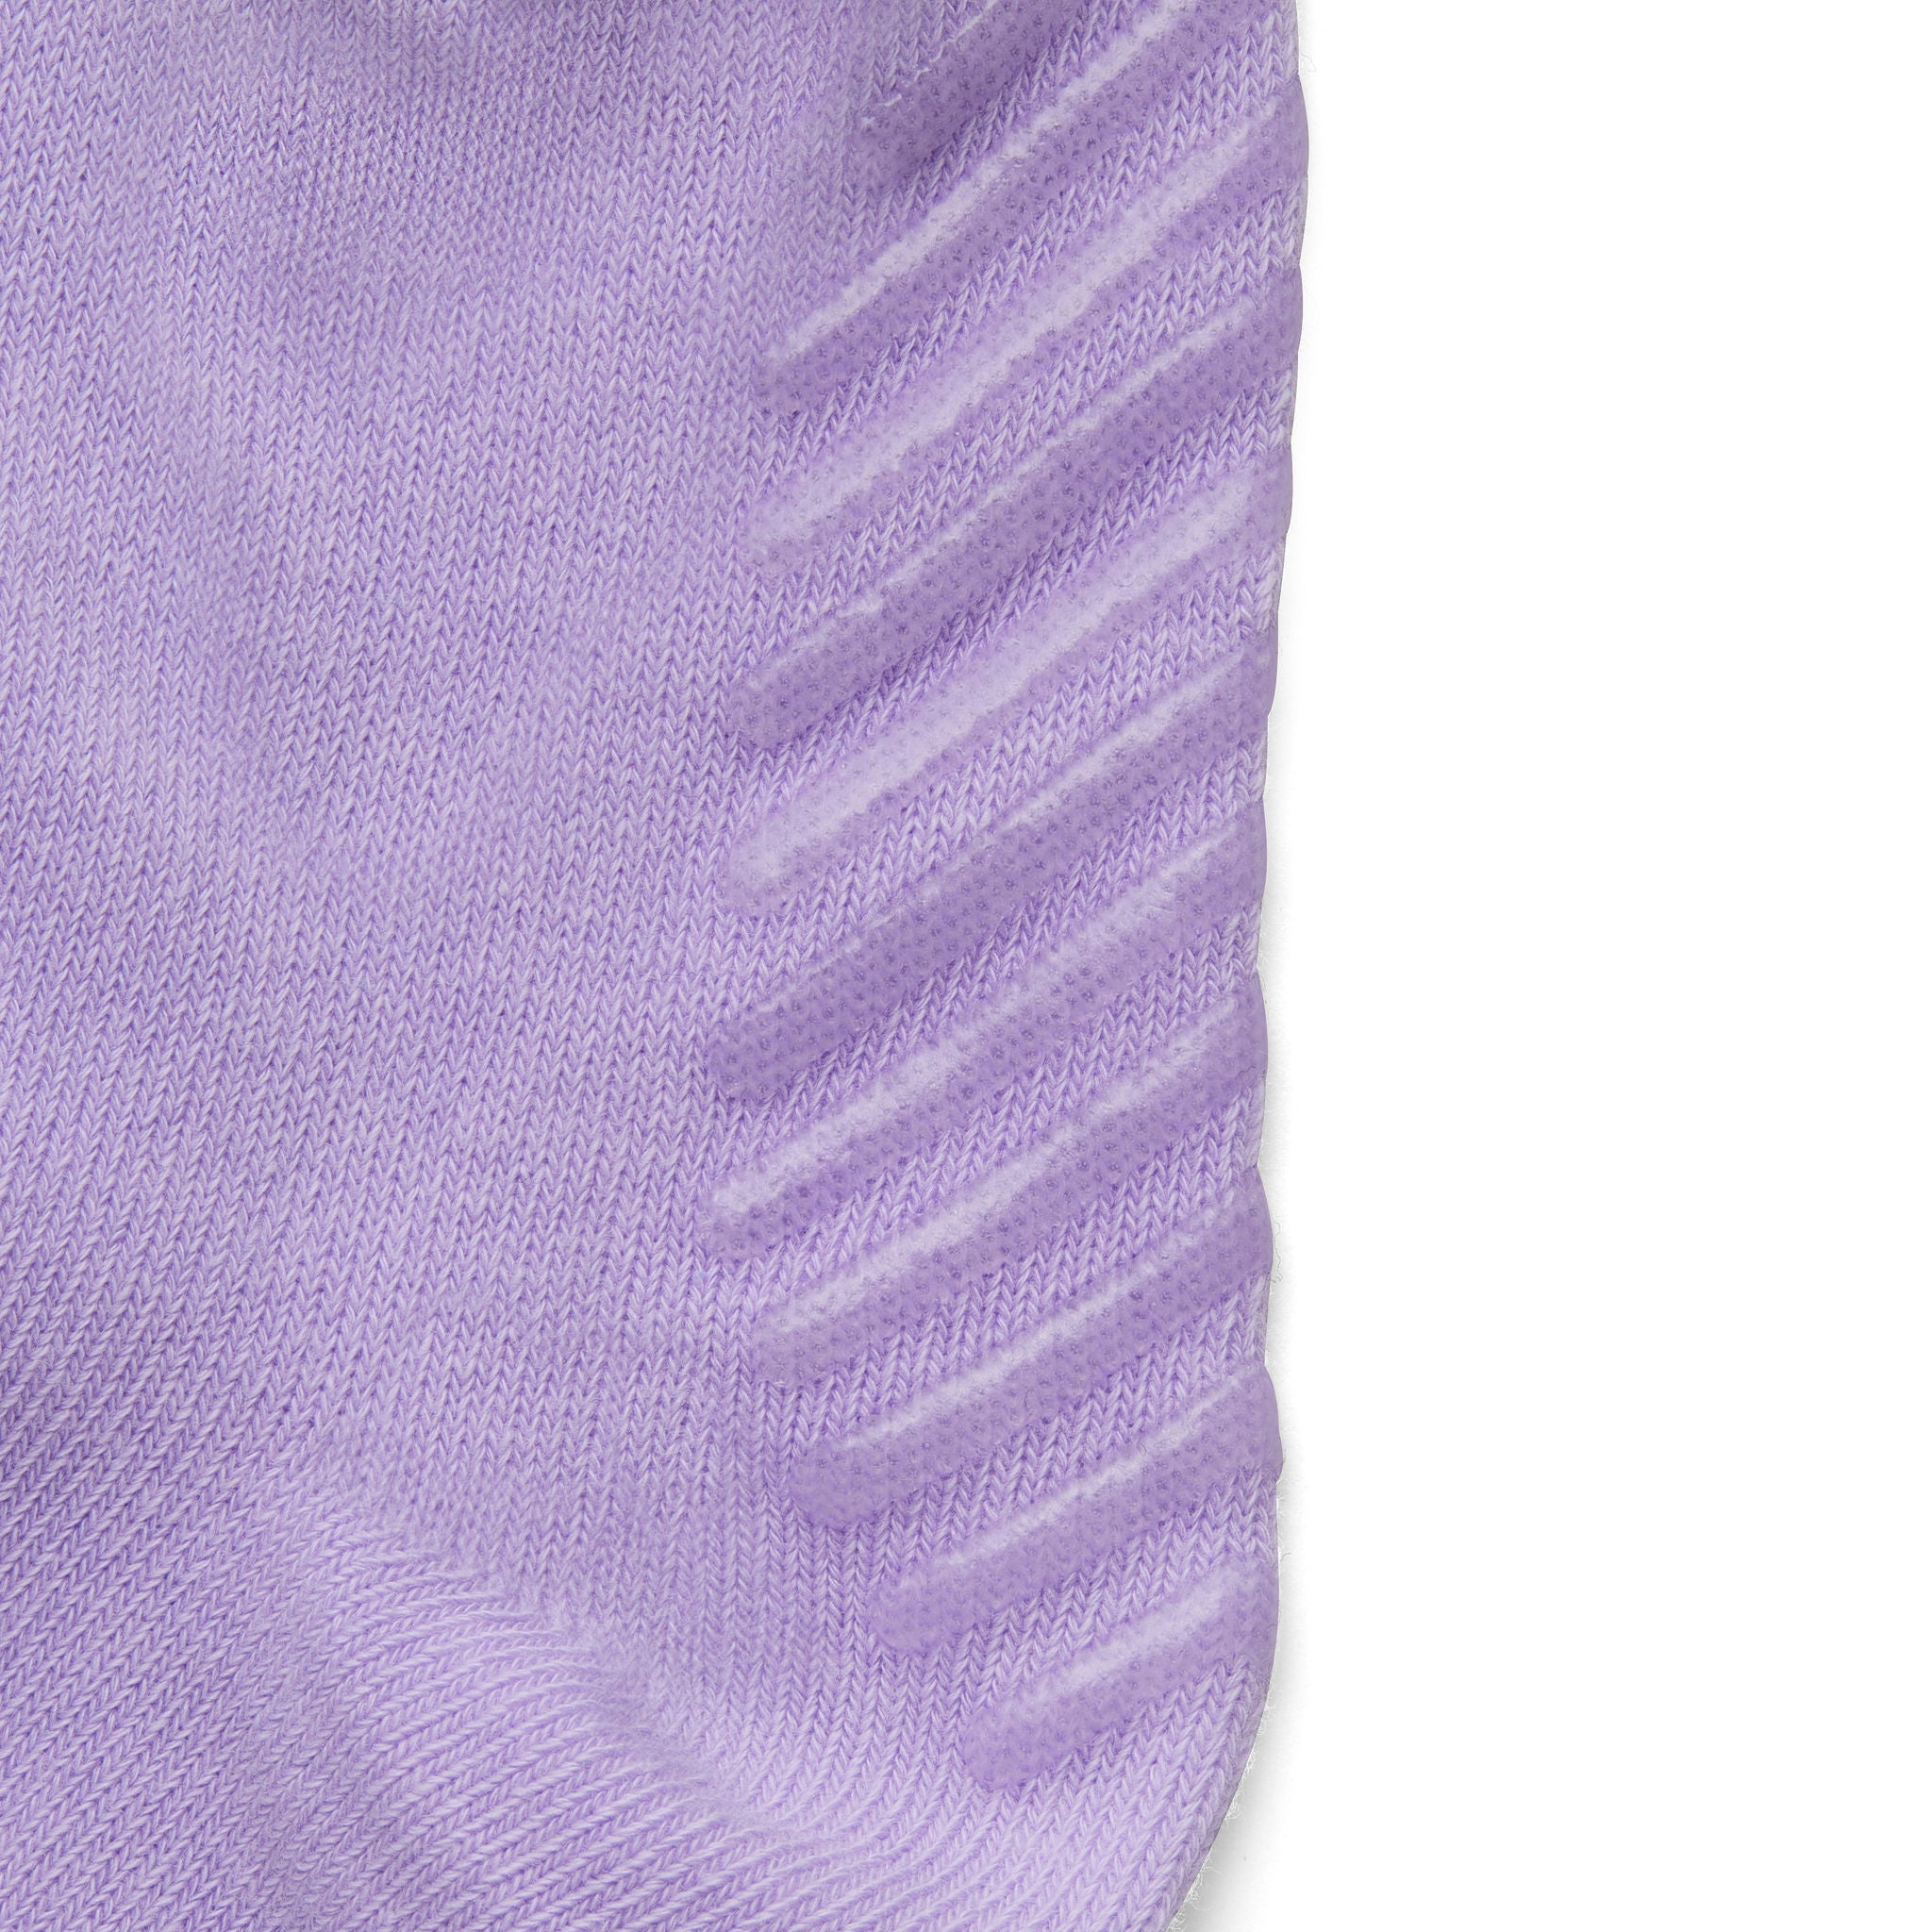 Gripjoy 4-6 Years Kids Boys & Girls Socks with Grips Purple Pink & Greys 4-Pack - Gripjoy Socks